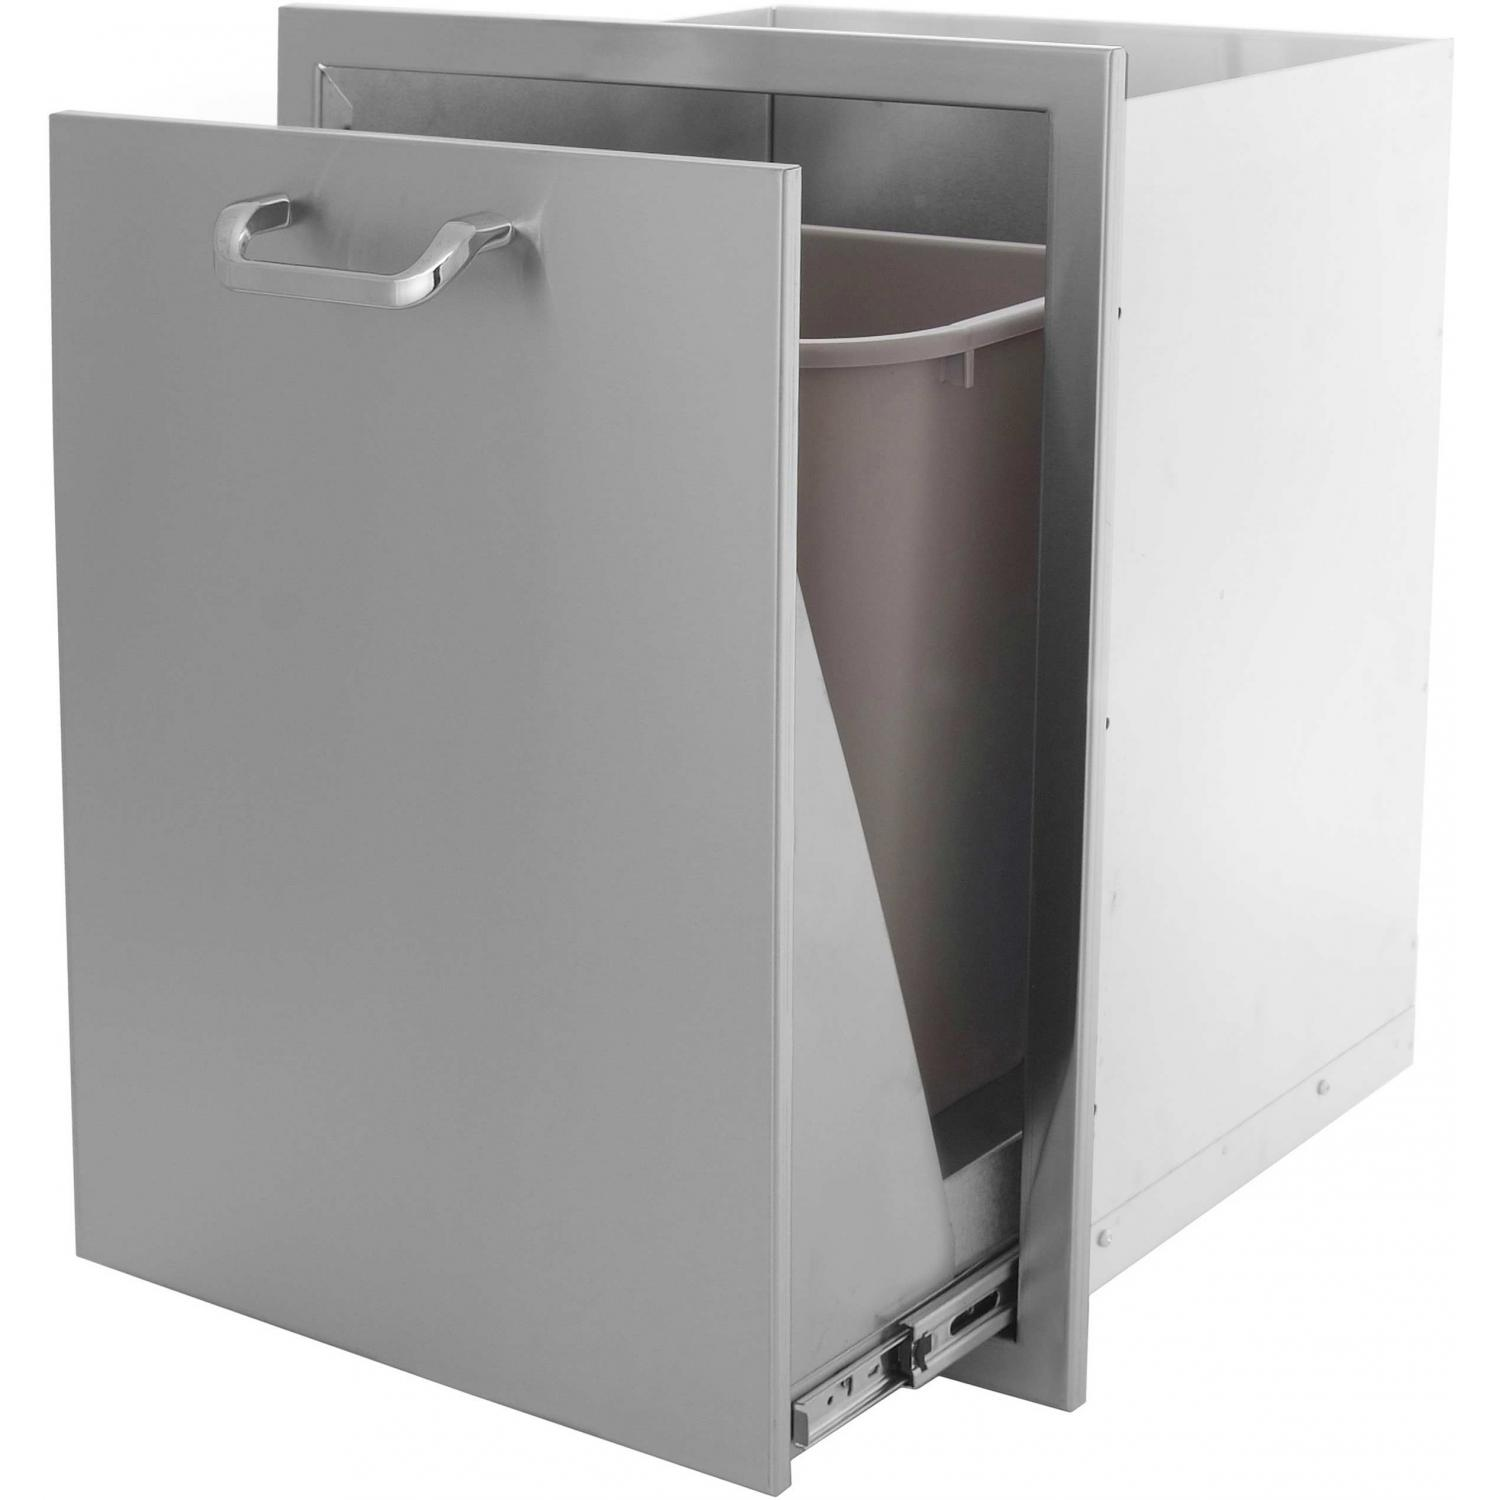 Kingston Series Roll Out Trash Bin